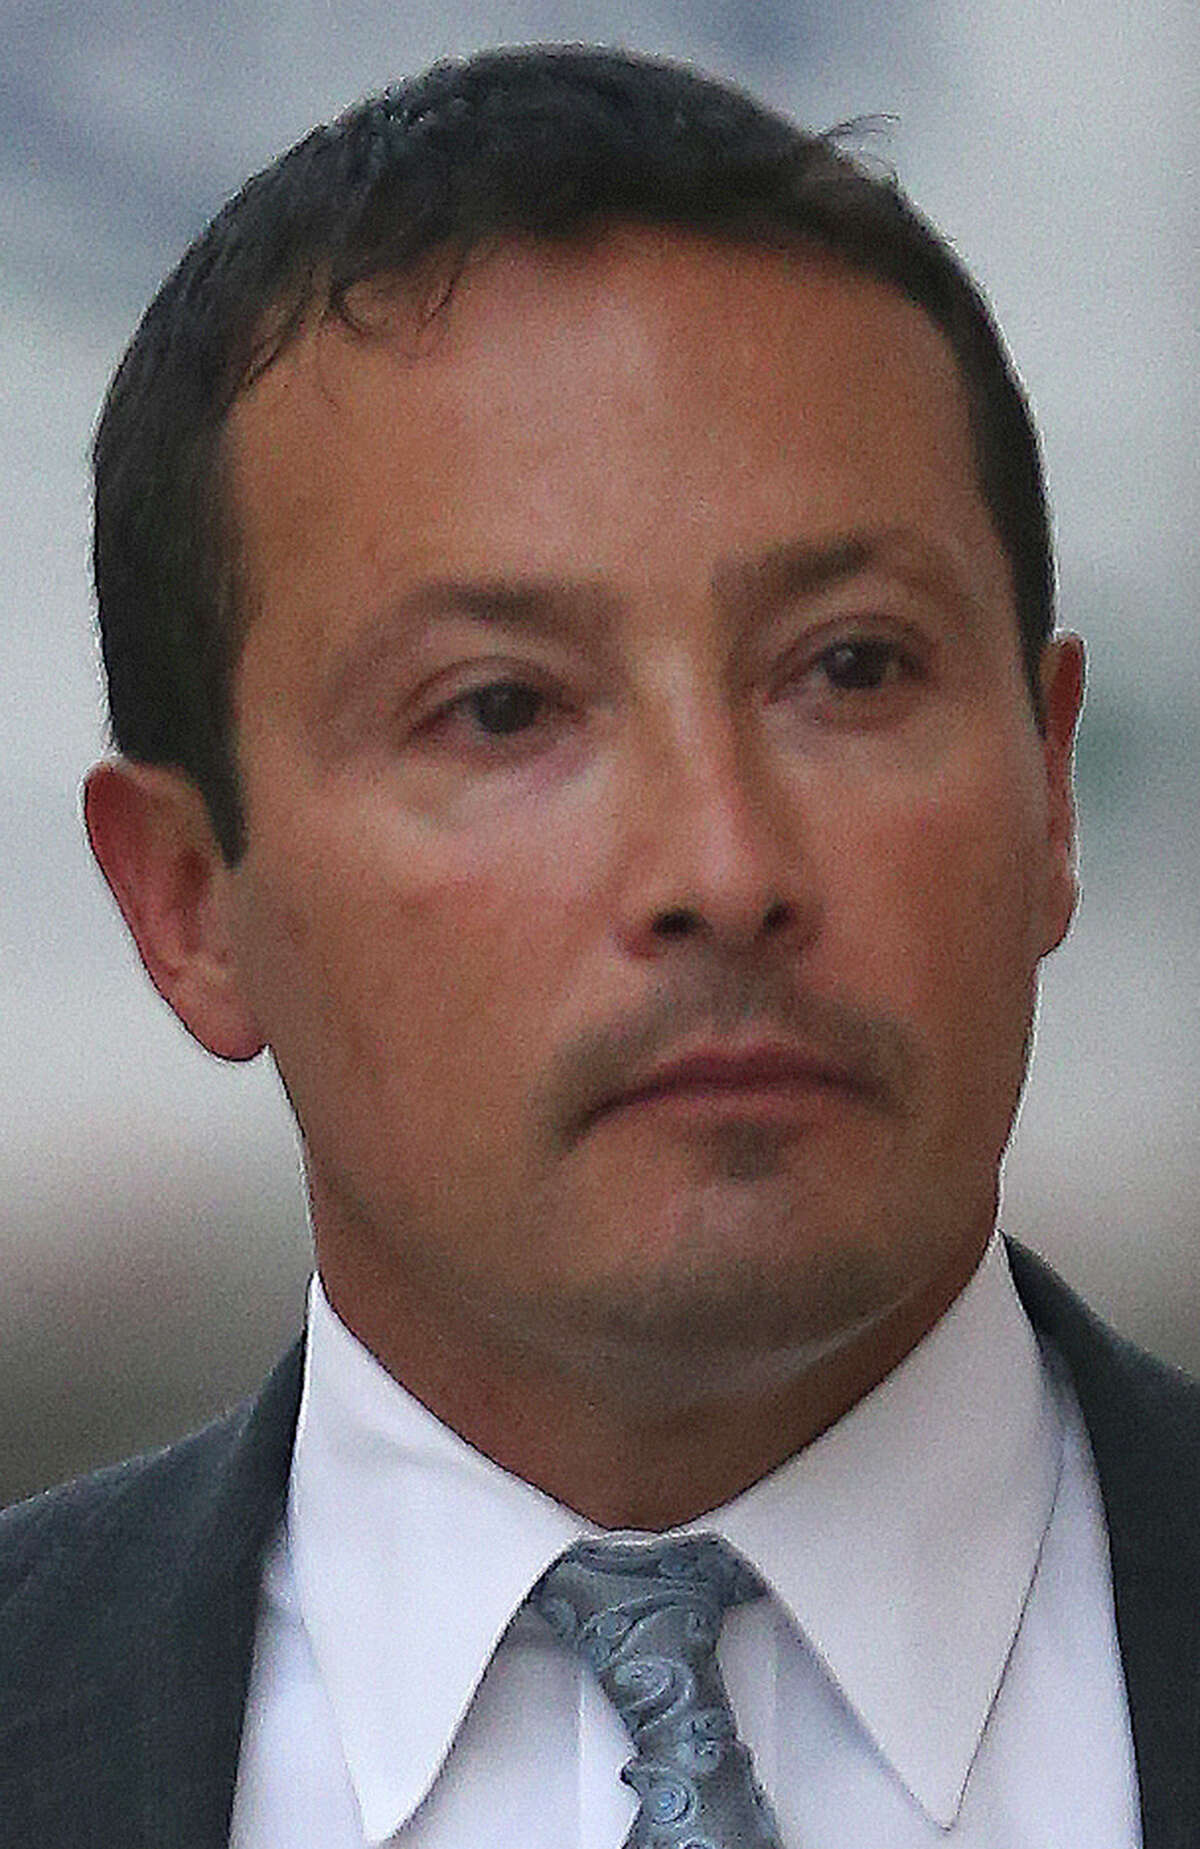 Brian Alfaro approaches the Hipolito Garcia U.S. Courthouse Wednesday September 2, 2015. The court-appointed receiver overseeing two of Alfaro's companies is seeking court permission to pursue potential claims against Alfaro.